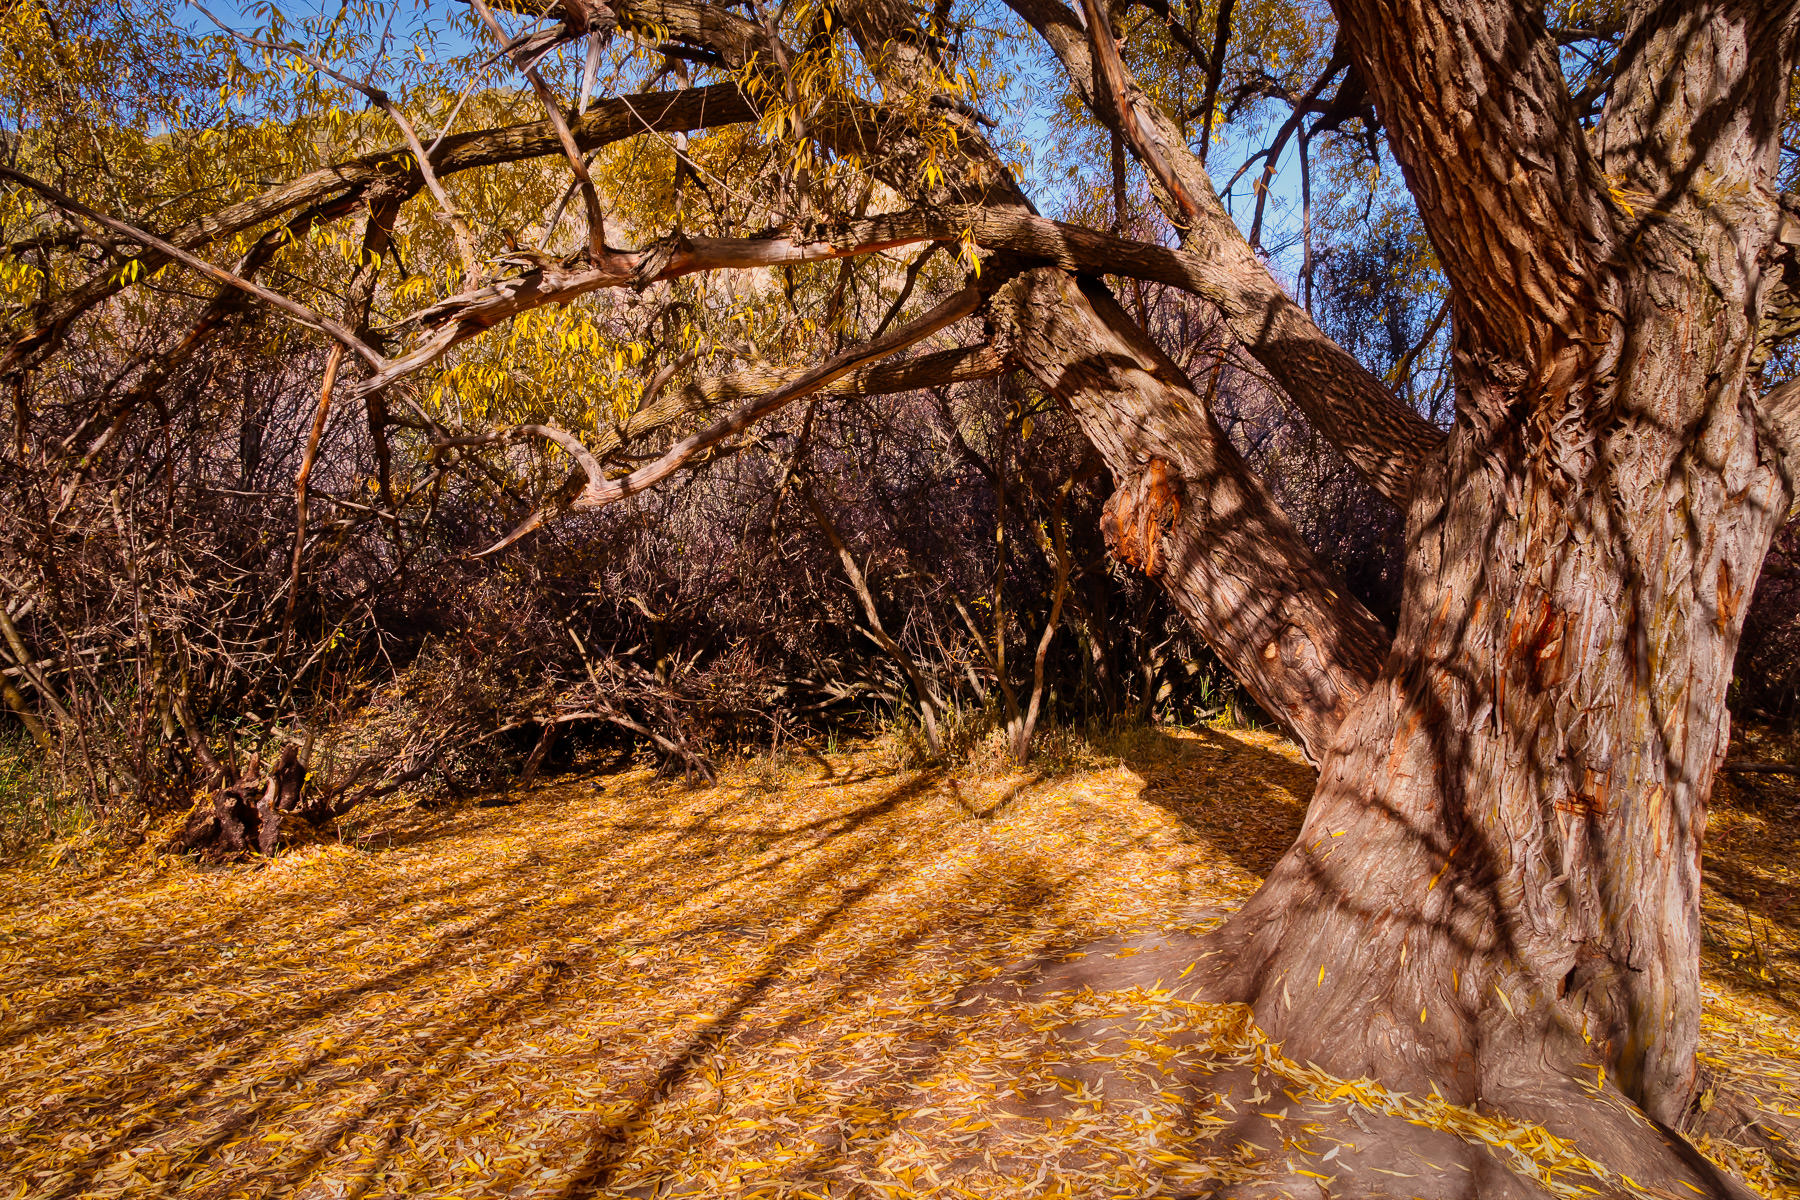 Autumn leaves cover the ground under a tree at Cherry Springs Nature Area near Pocatello, Idaho.